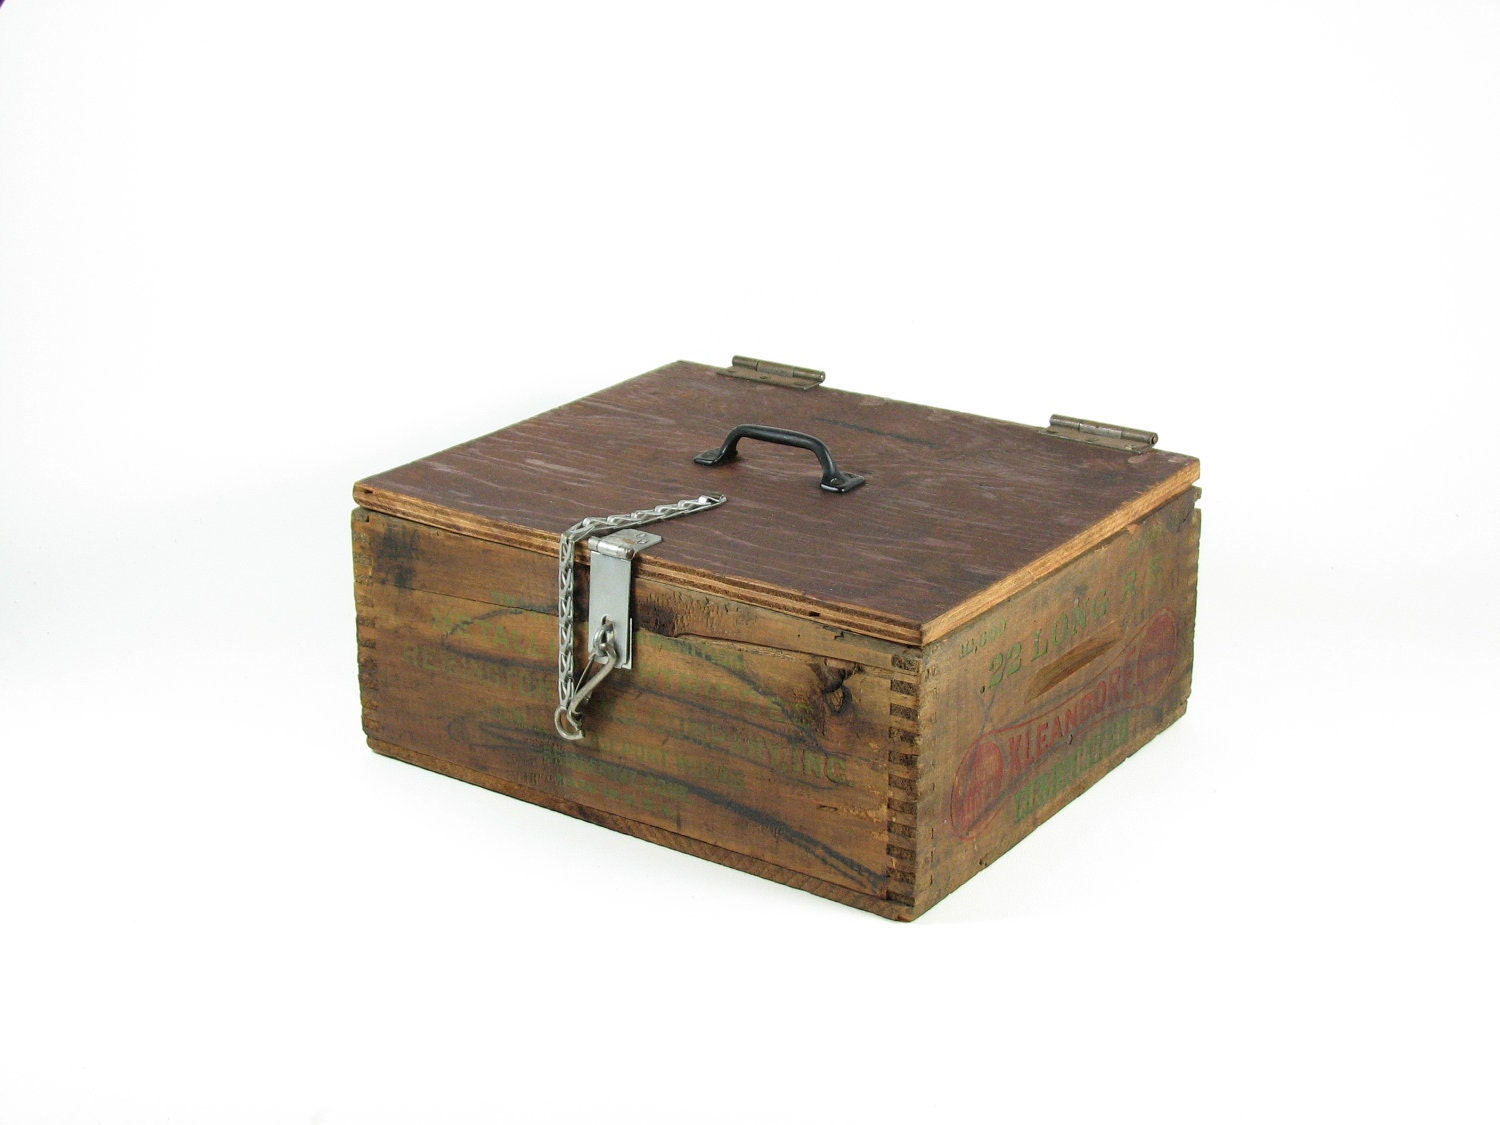 Vintage Ammo Box Wood Crate Wooden Box Remington Arms Co Box